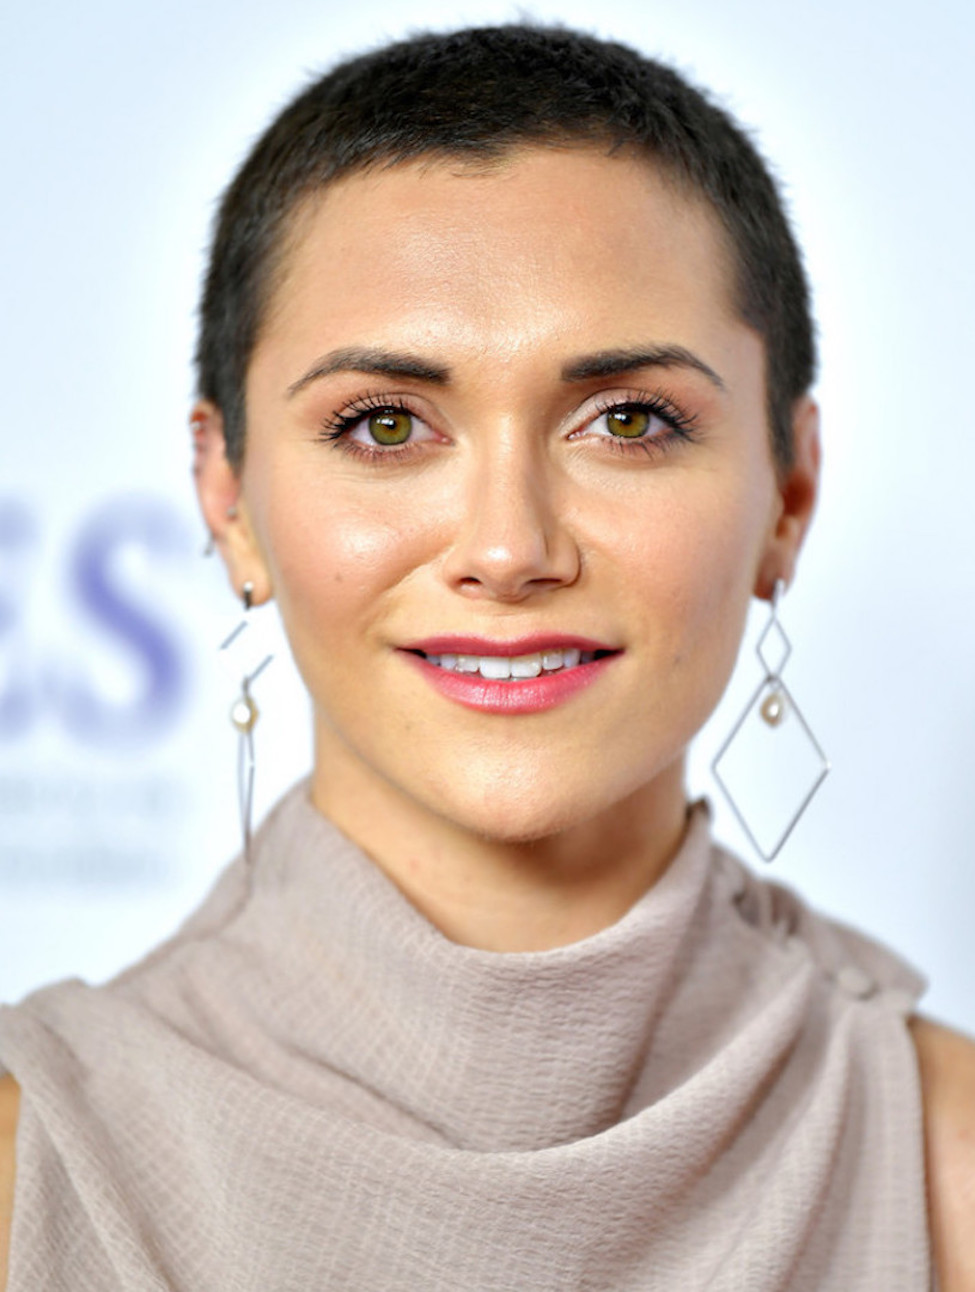 Instagram Pictures Alyson Stoner naked photo 2017